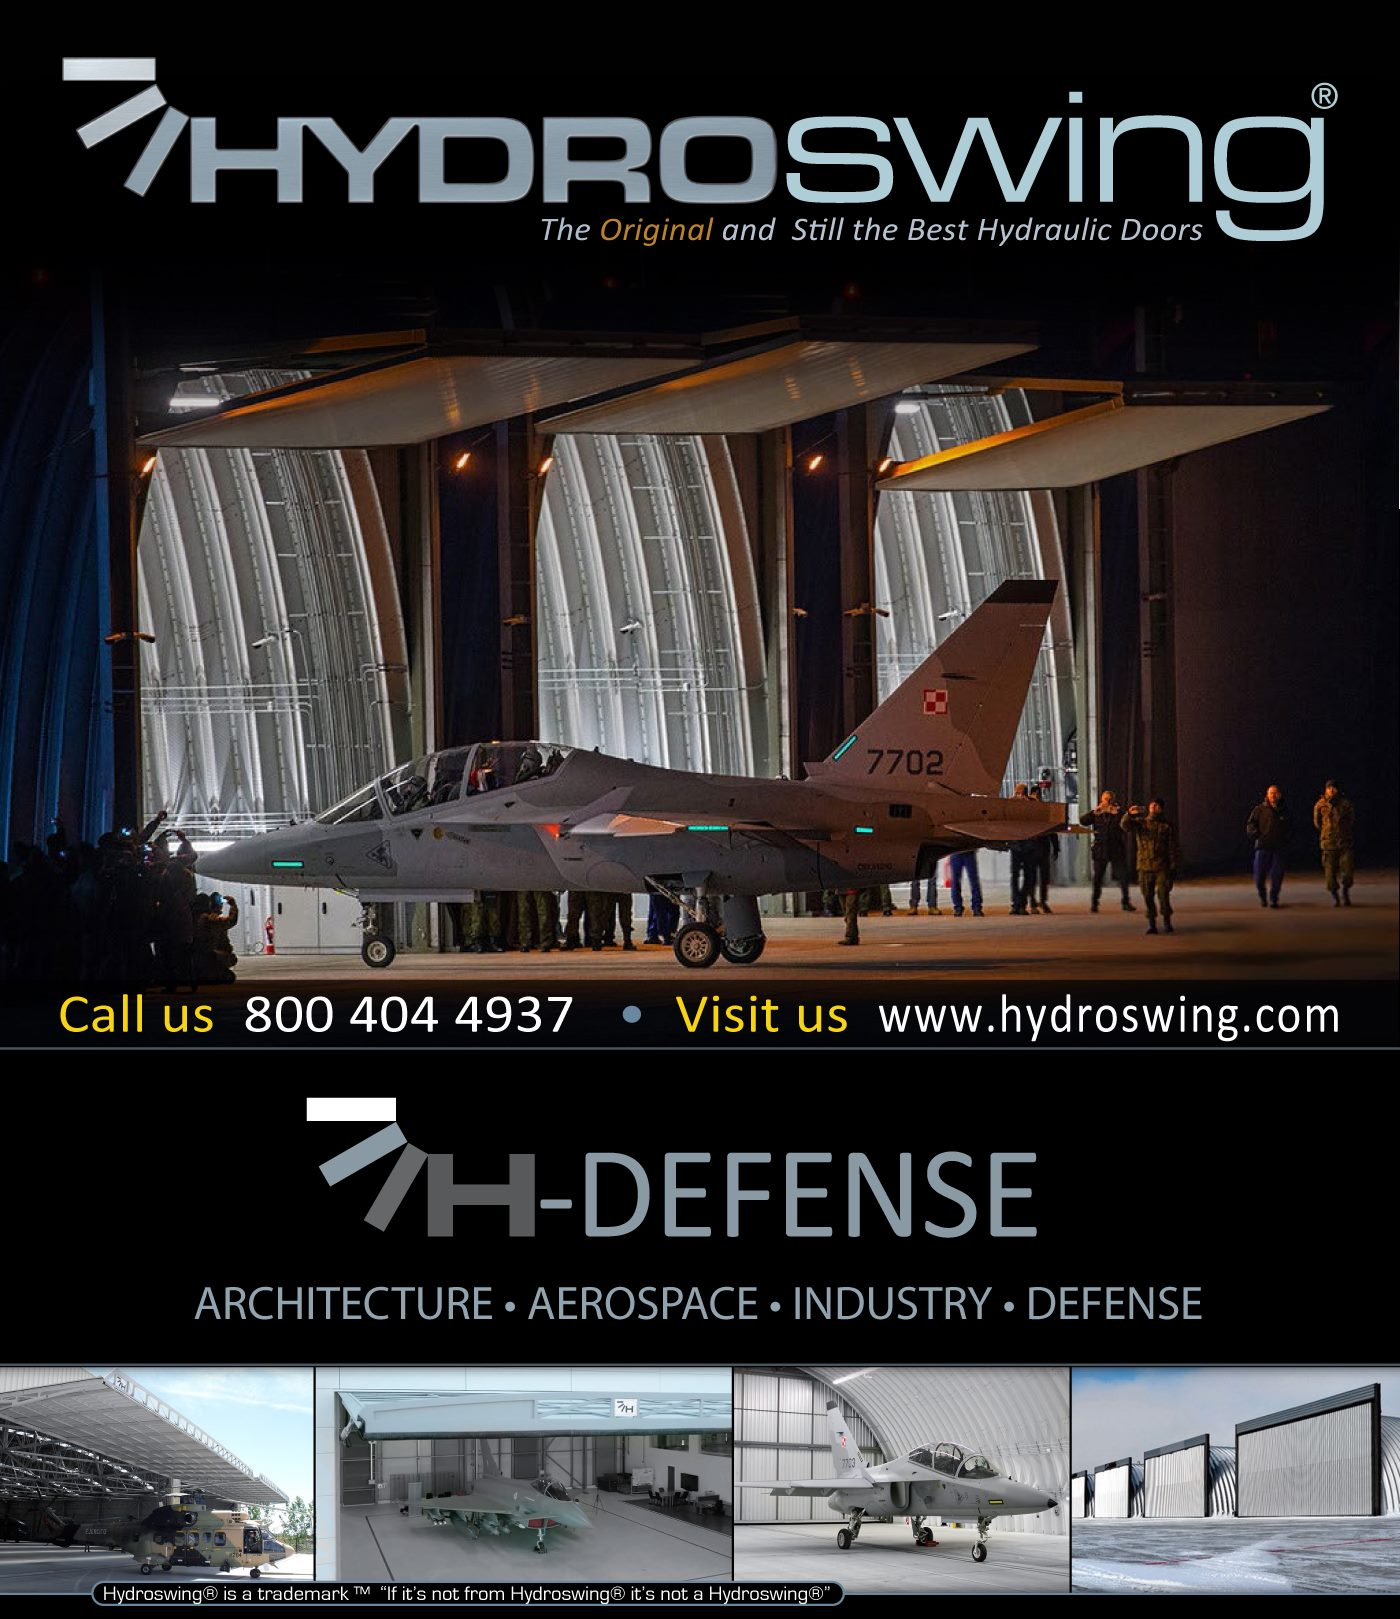 hydroswing hydraulic doors quanset hut aerospace defense industry